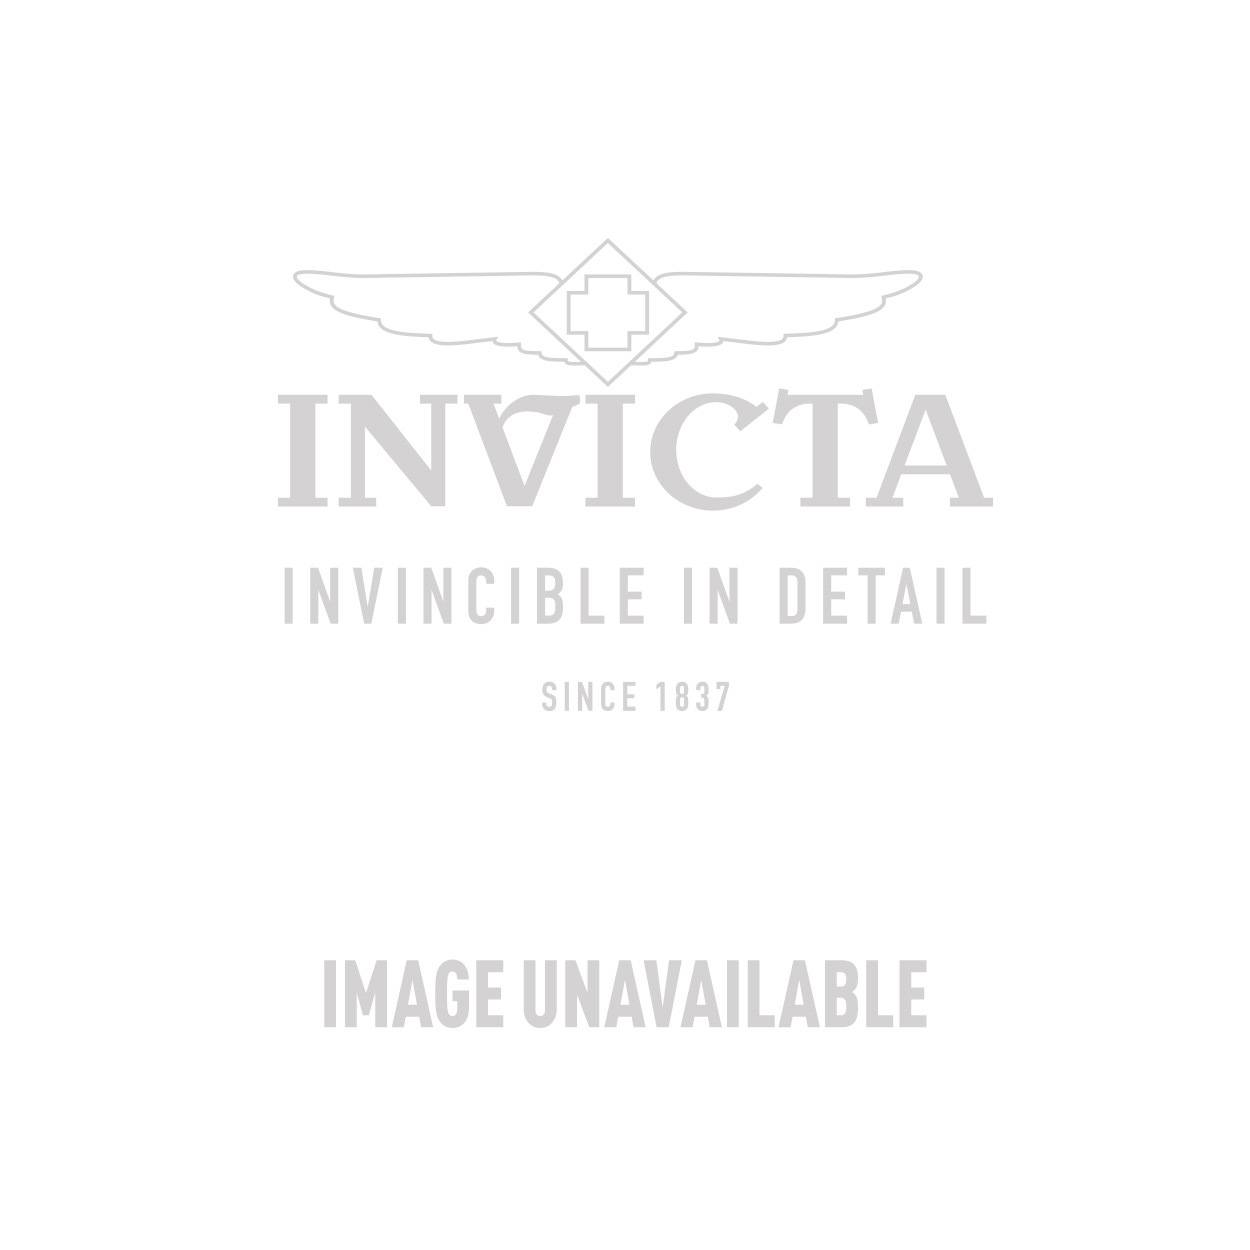 Invicta S1 Rally Swiss Made Quartz Watch - Stainless Steel case with Black tone Leather band - Model 15789